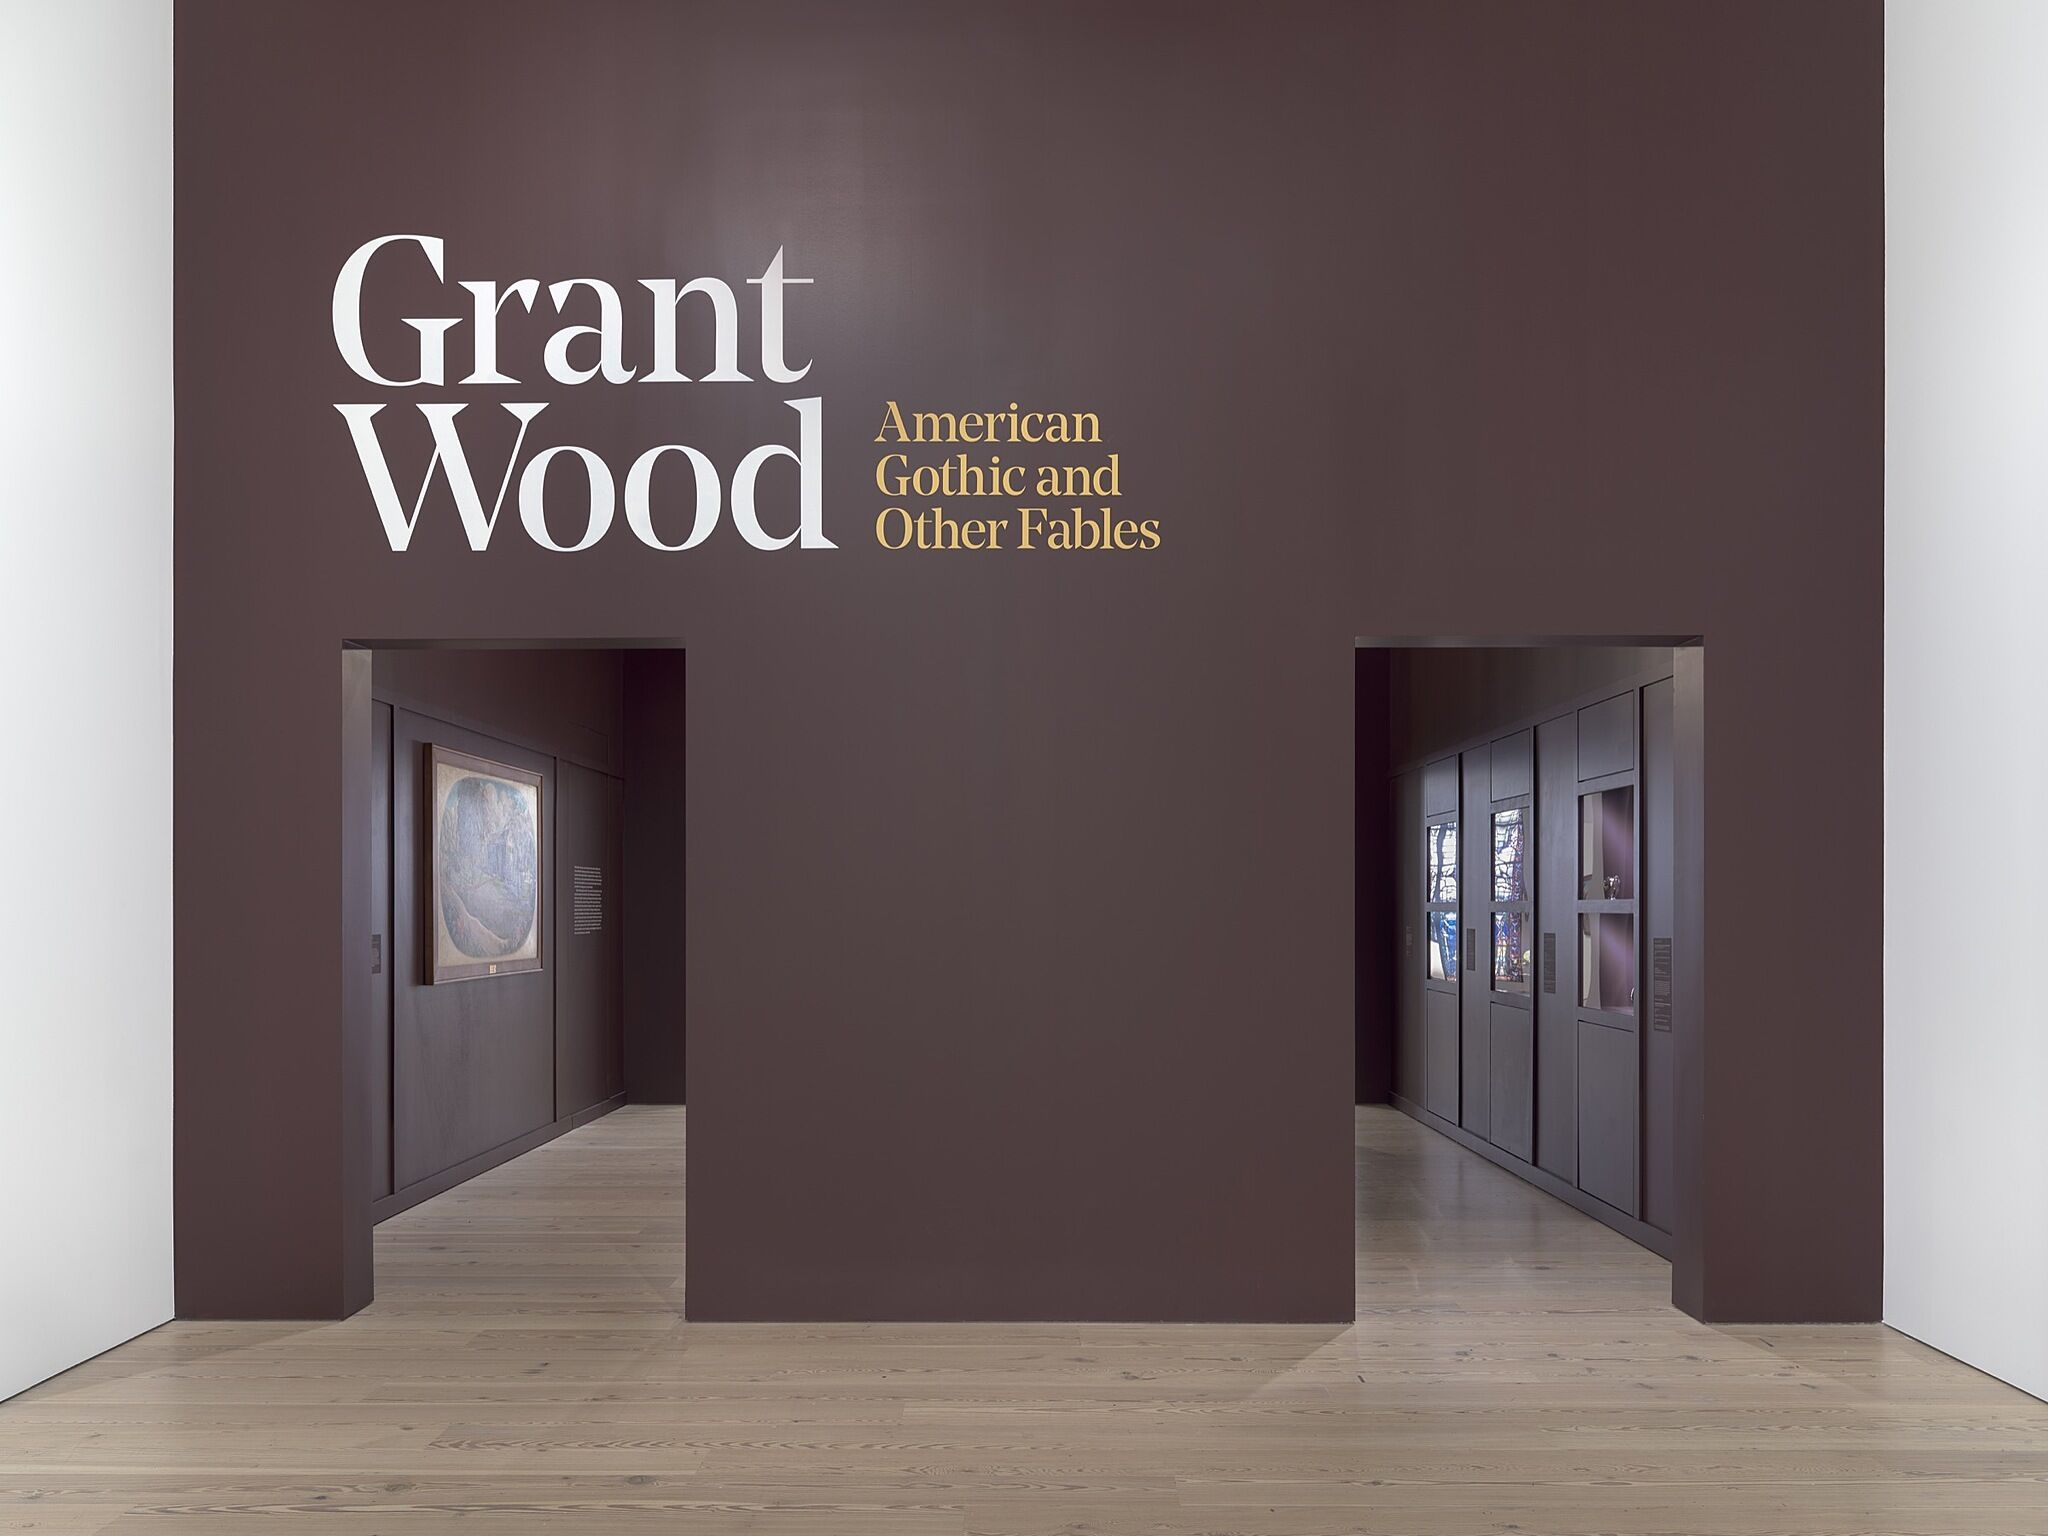 The opening of an exhibition with introductory wall text.